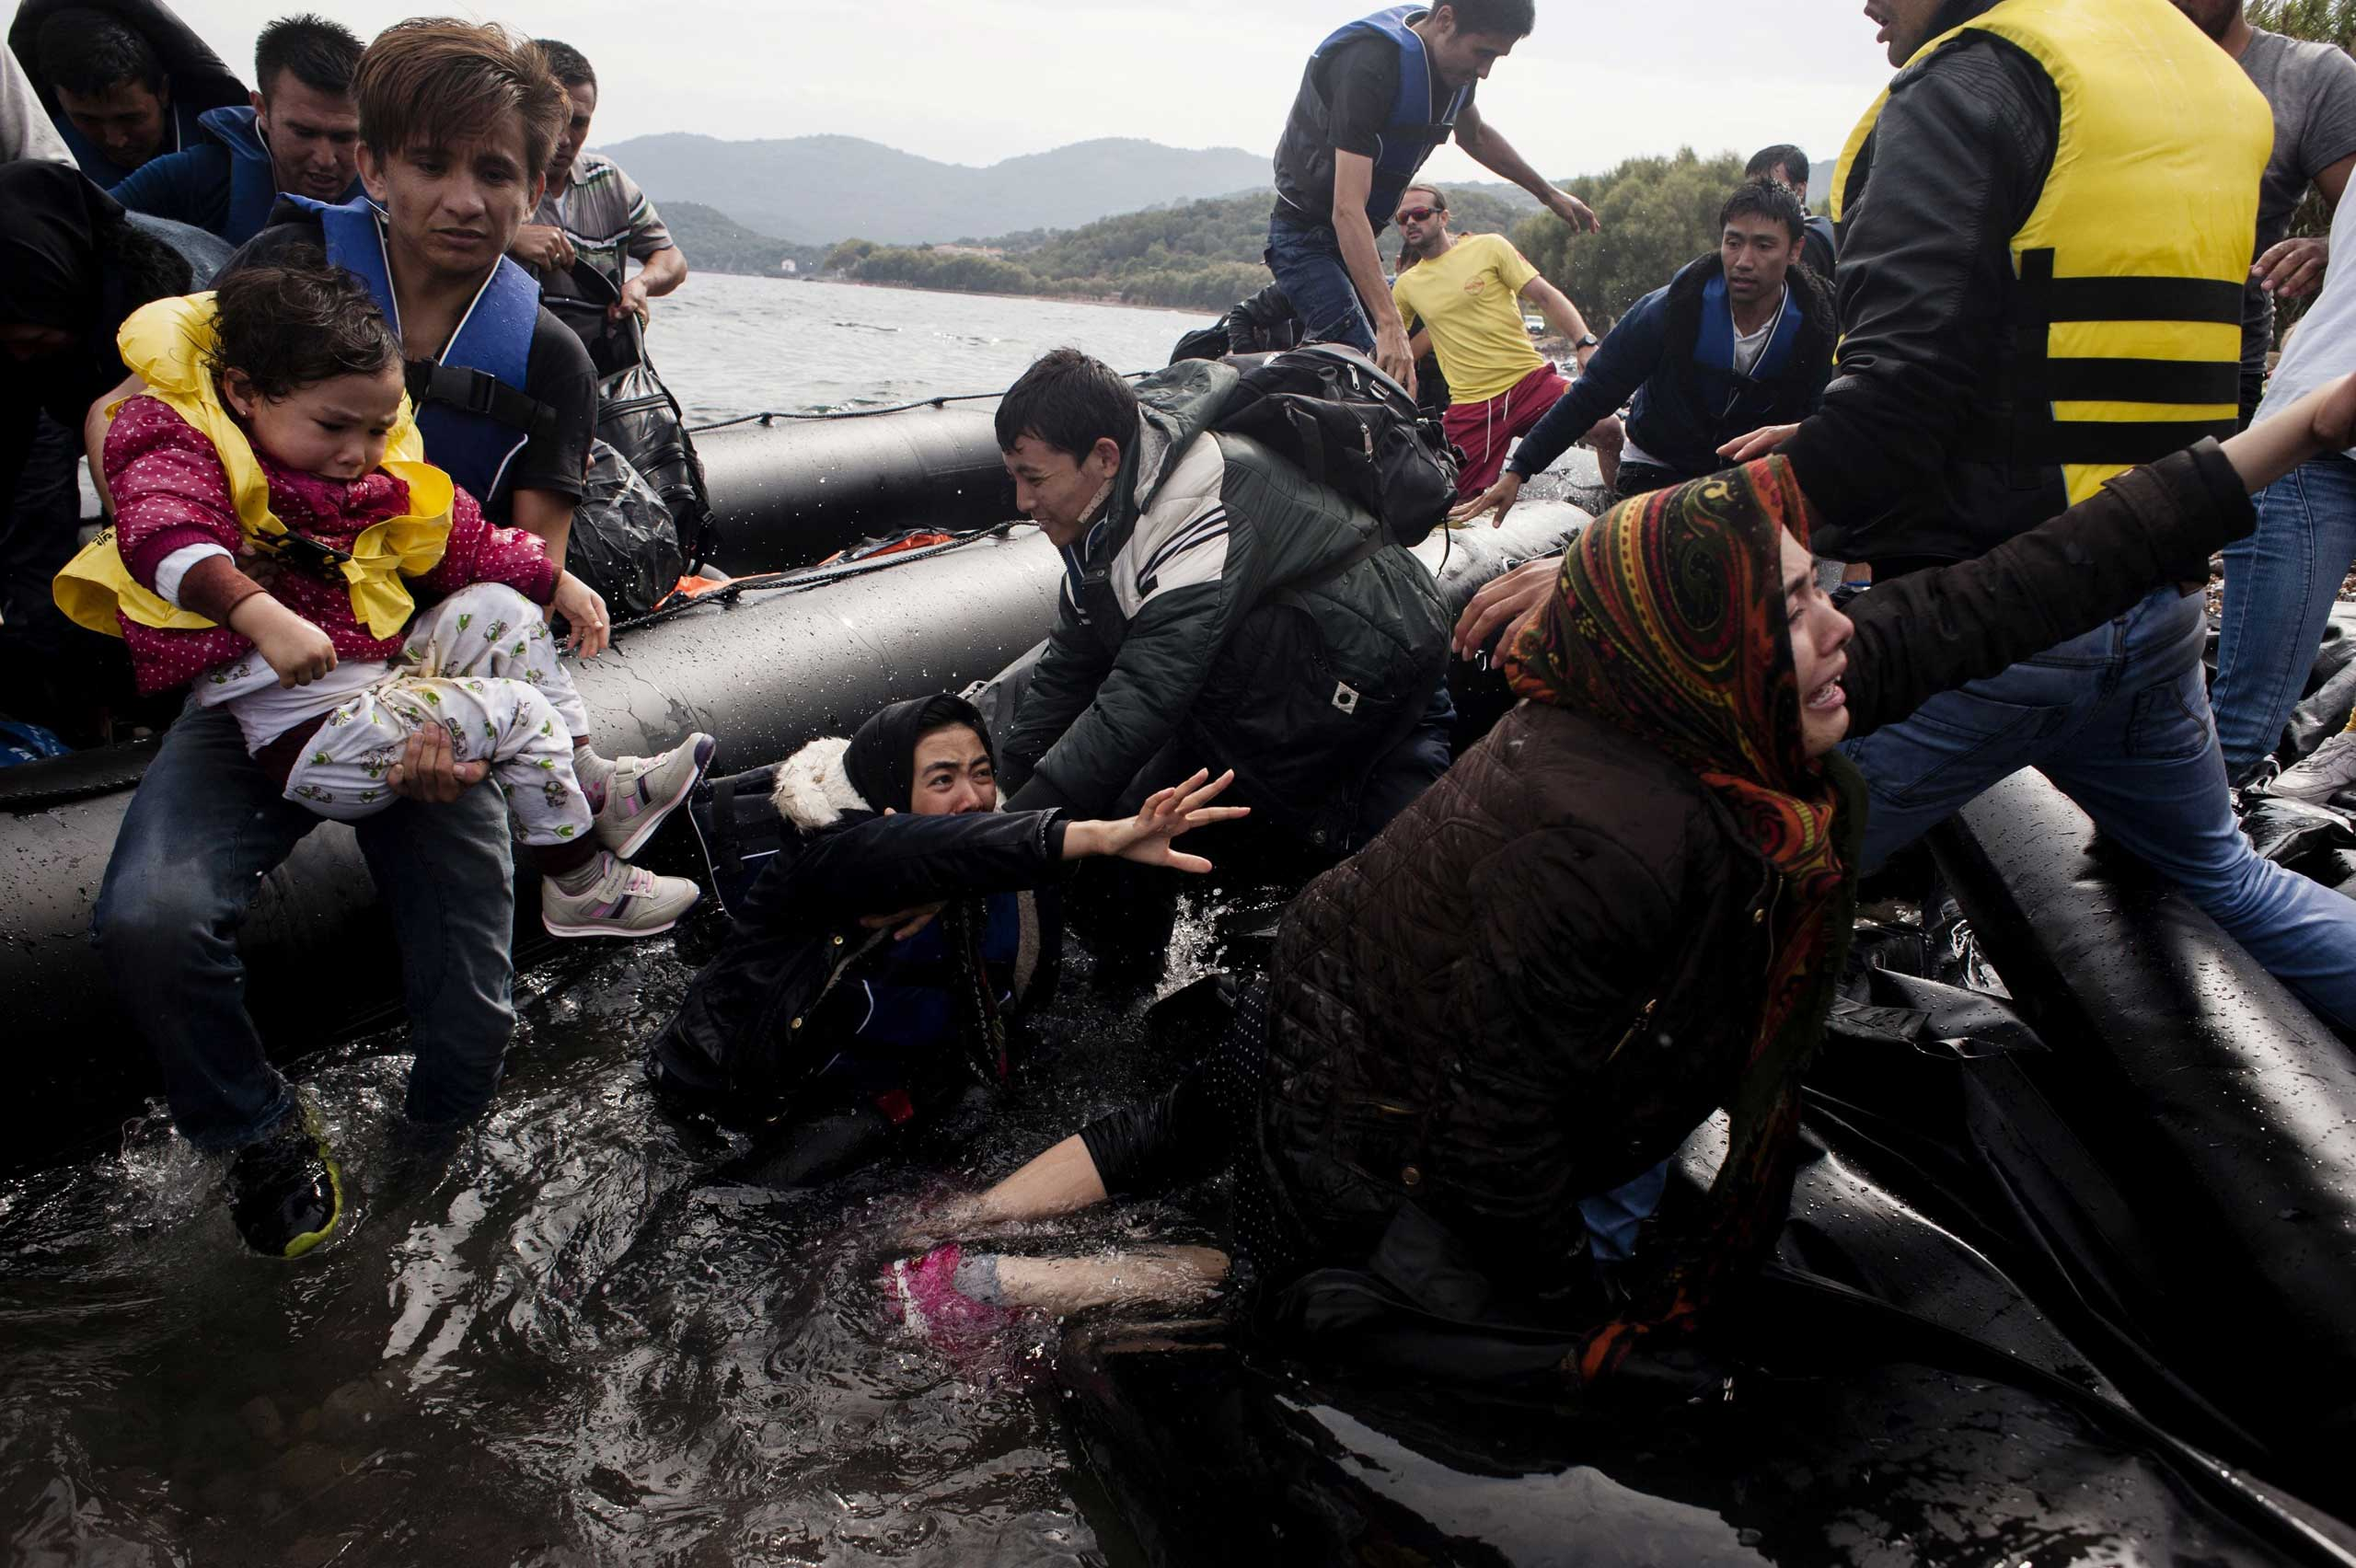 Migrants and refugees arrive on Sykamia beach, west of the port of Mytilene, on the Greek island of Lesbos after crossing the Aegean sea from Turkey, on Sept. 22, 2015.